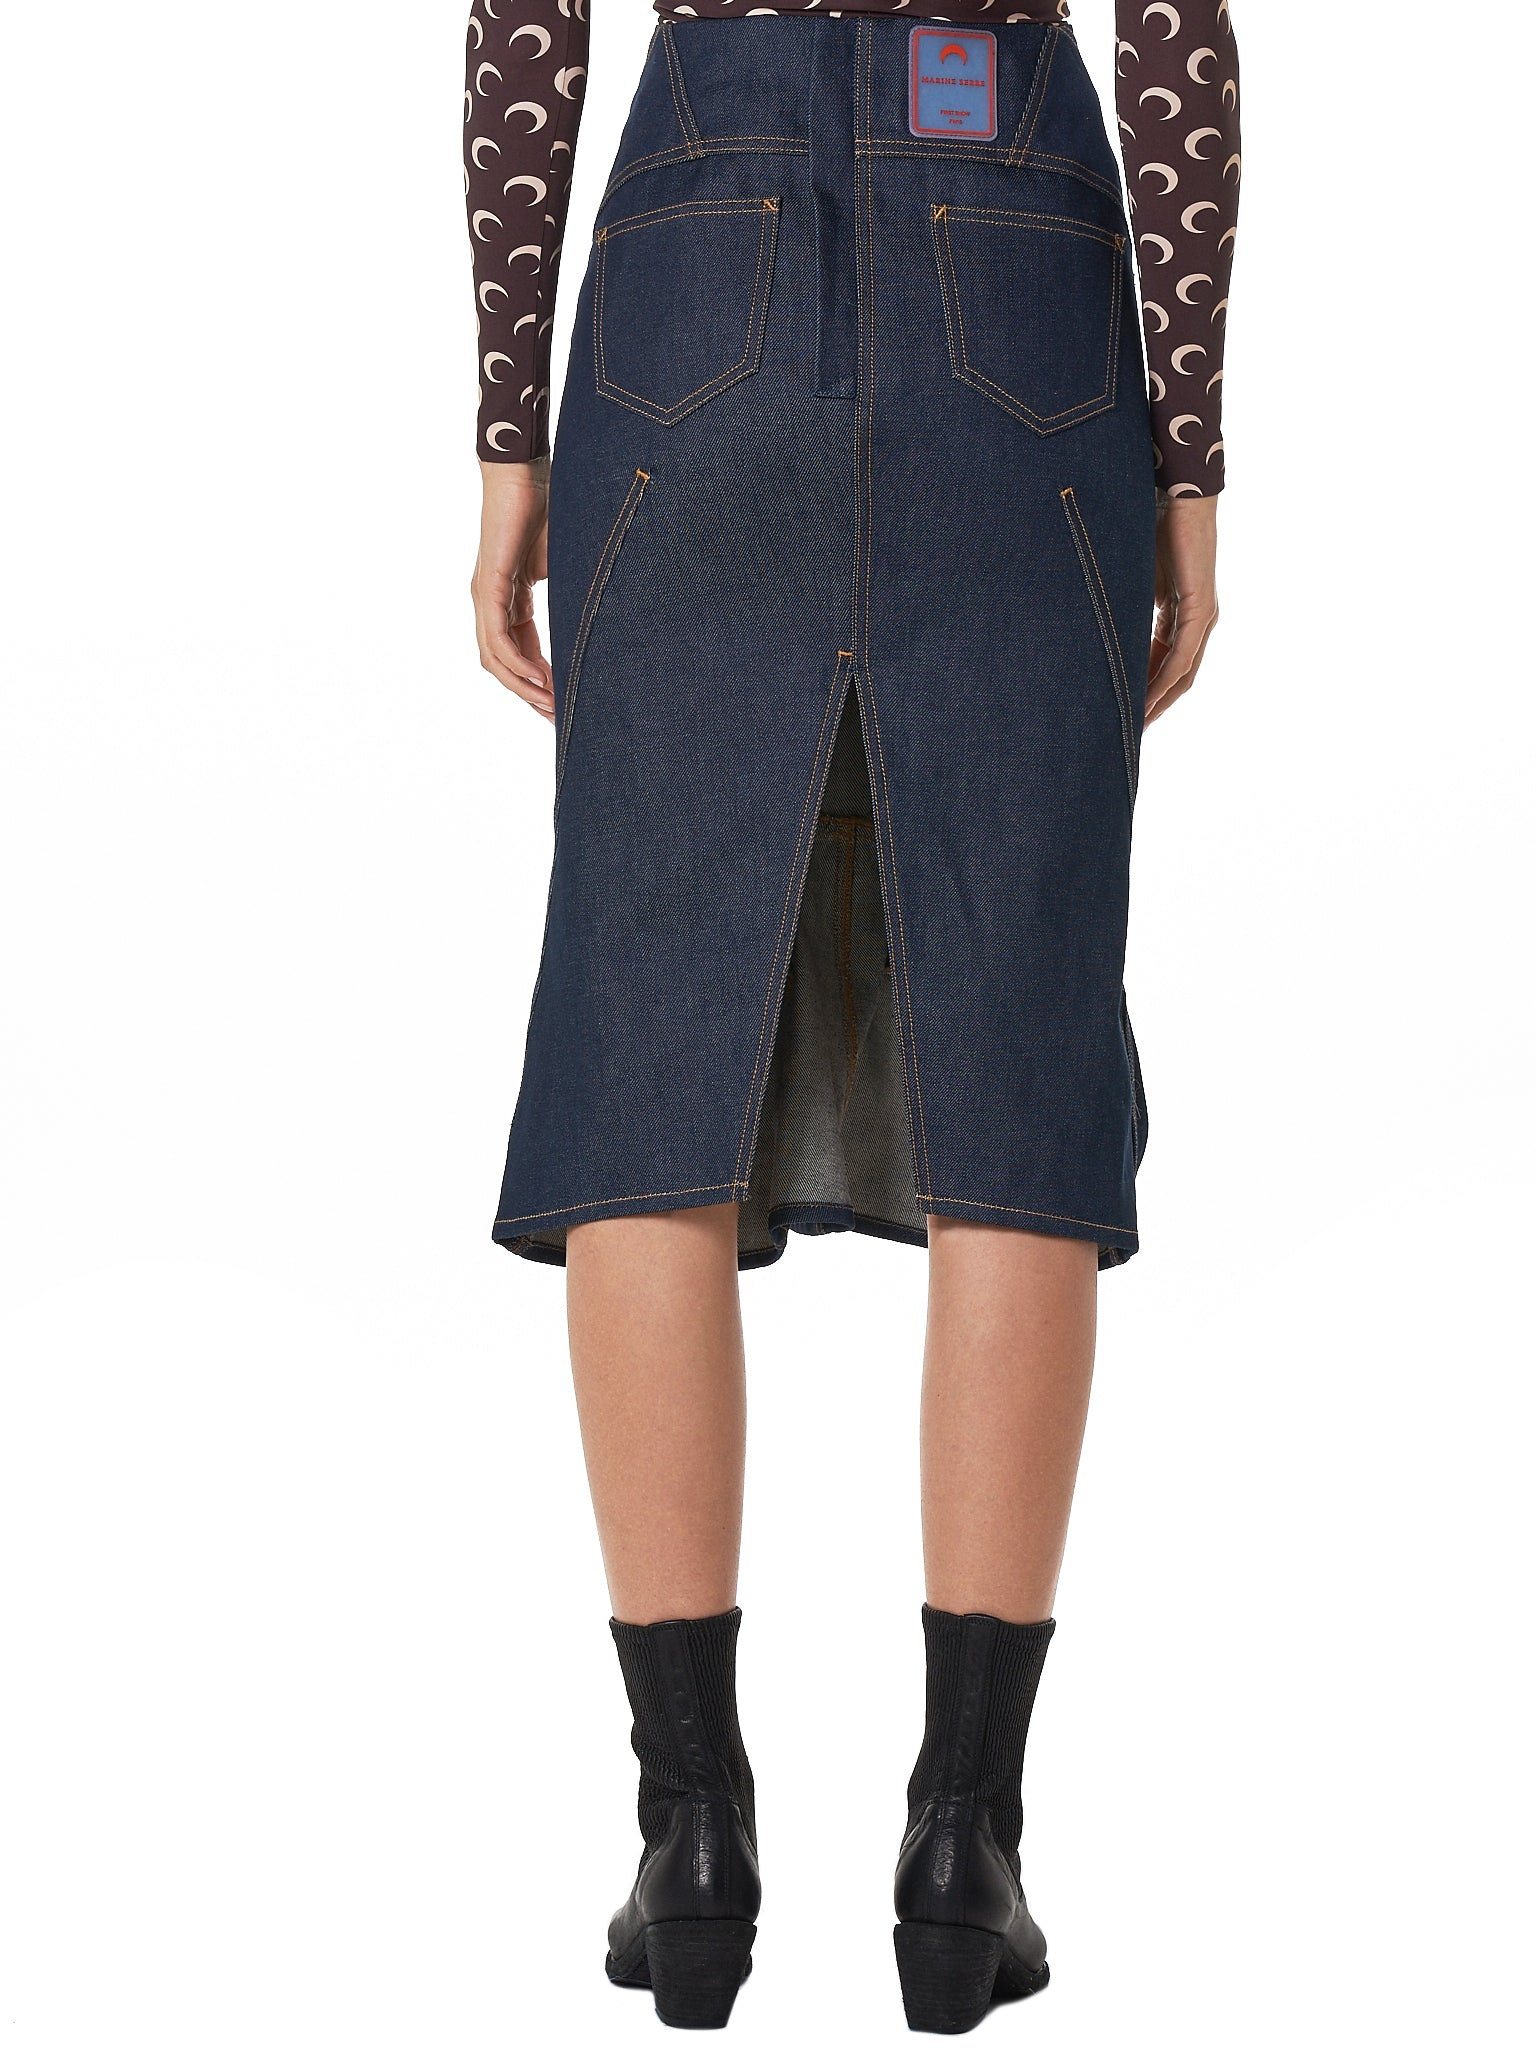 Marine Serre Denim Skirt - Hlorenzo Back